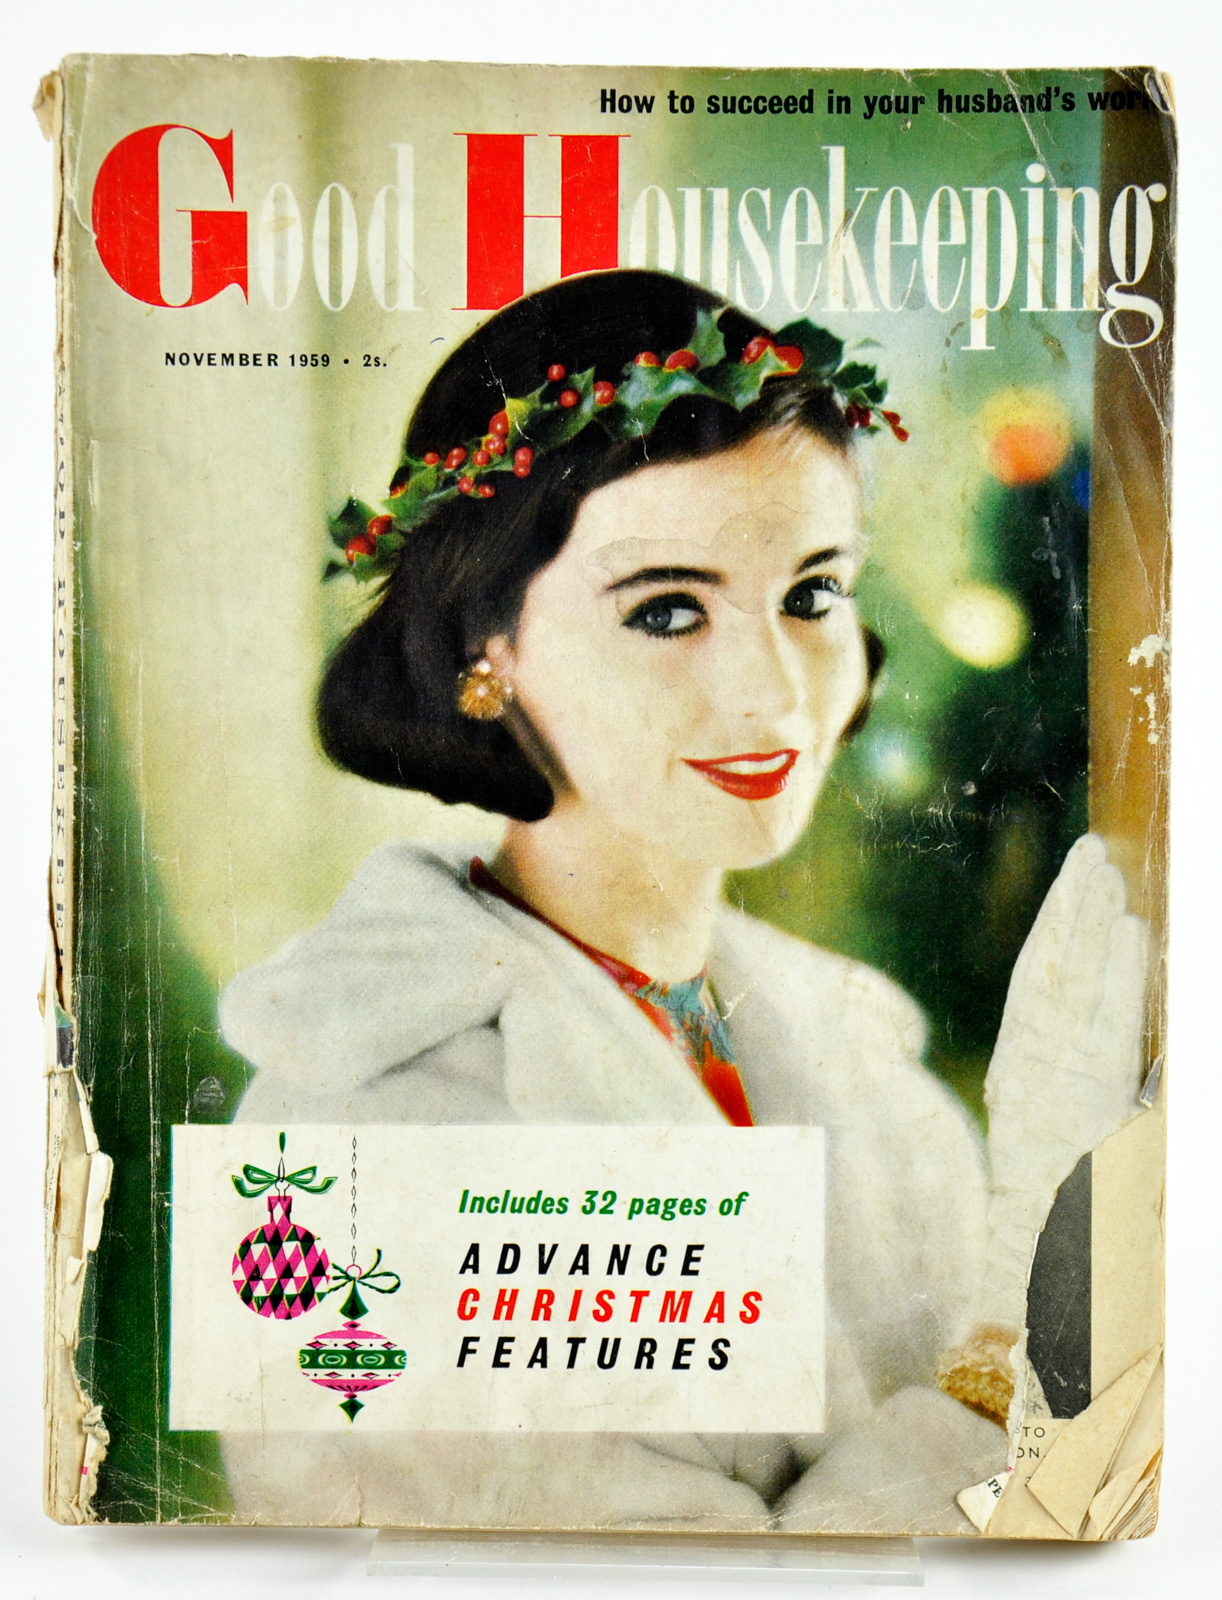 Good Housekeeping magazine, November 1959, depicting a woman wearing a holly wreath and white coat to tie in with 32 pages of advance Christmas features